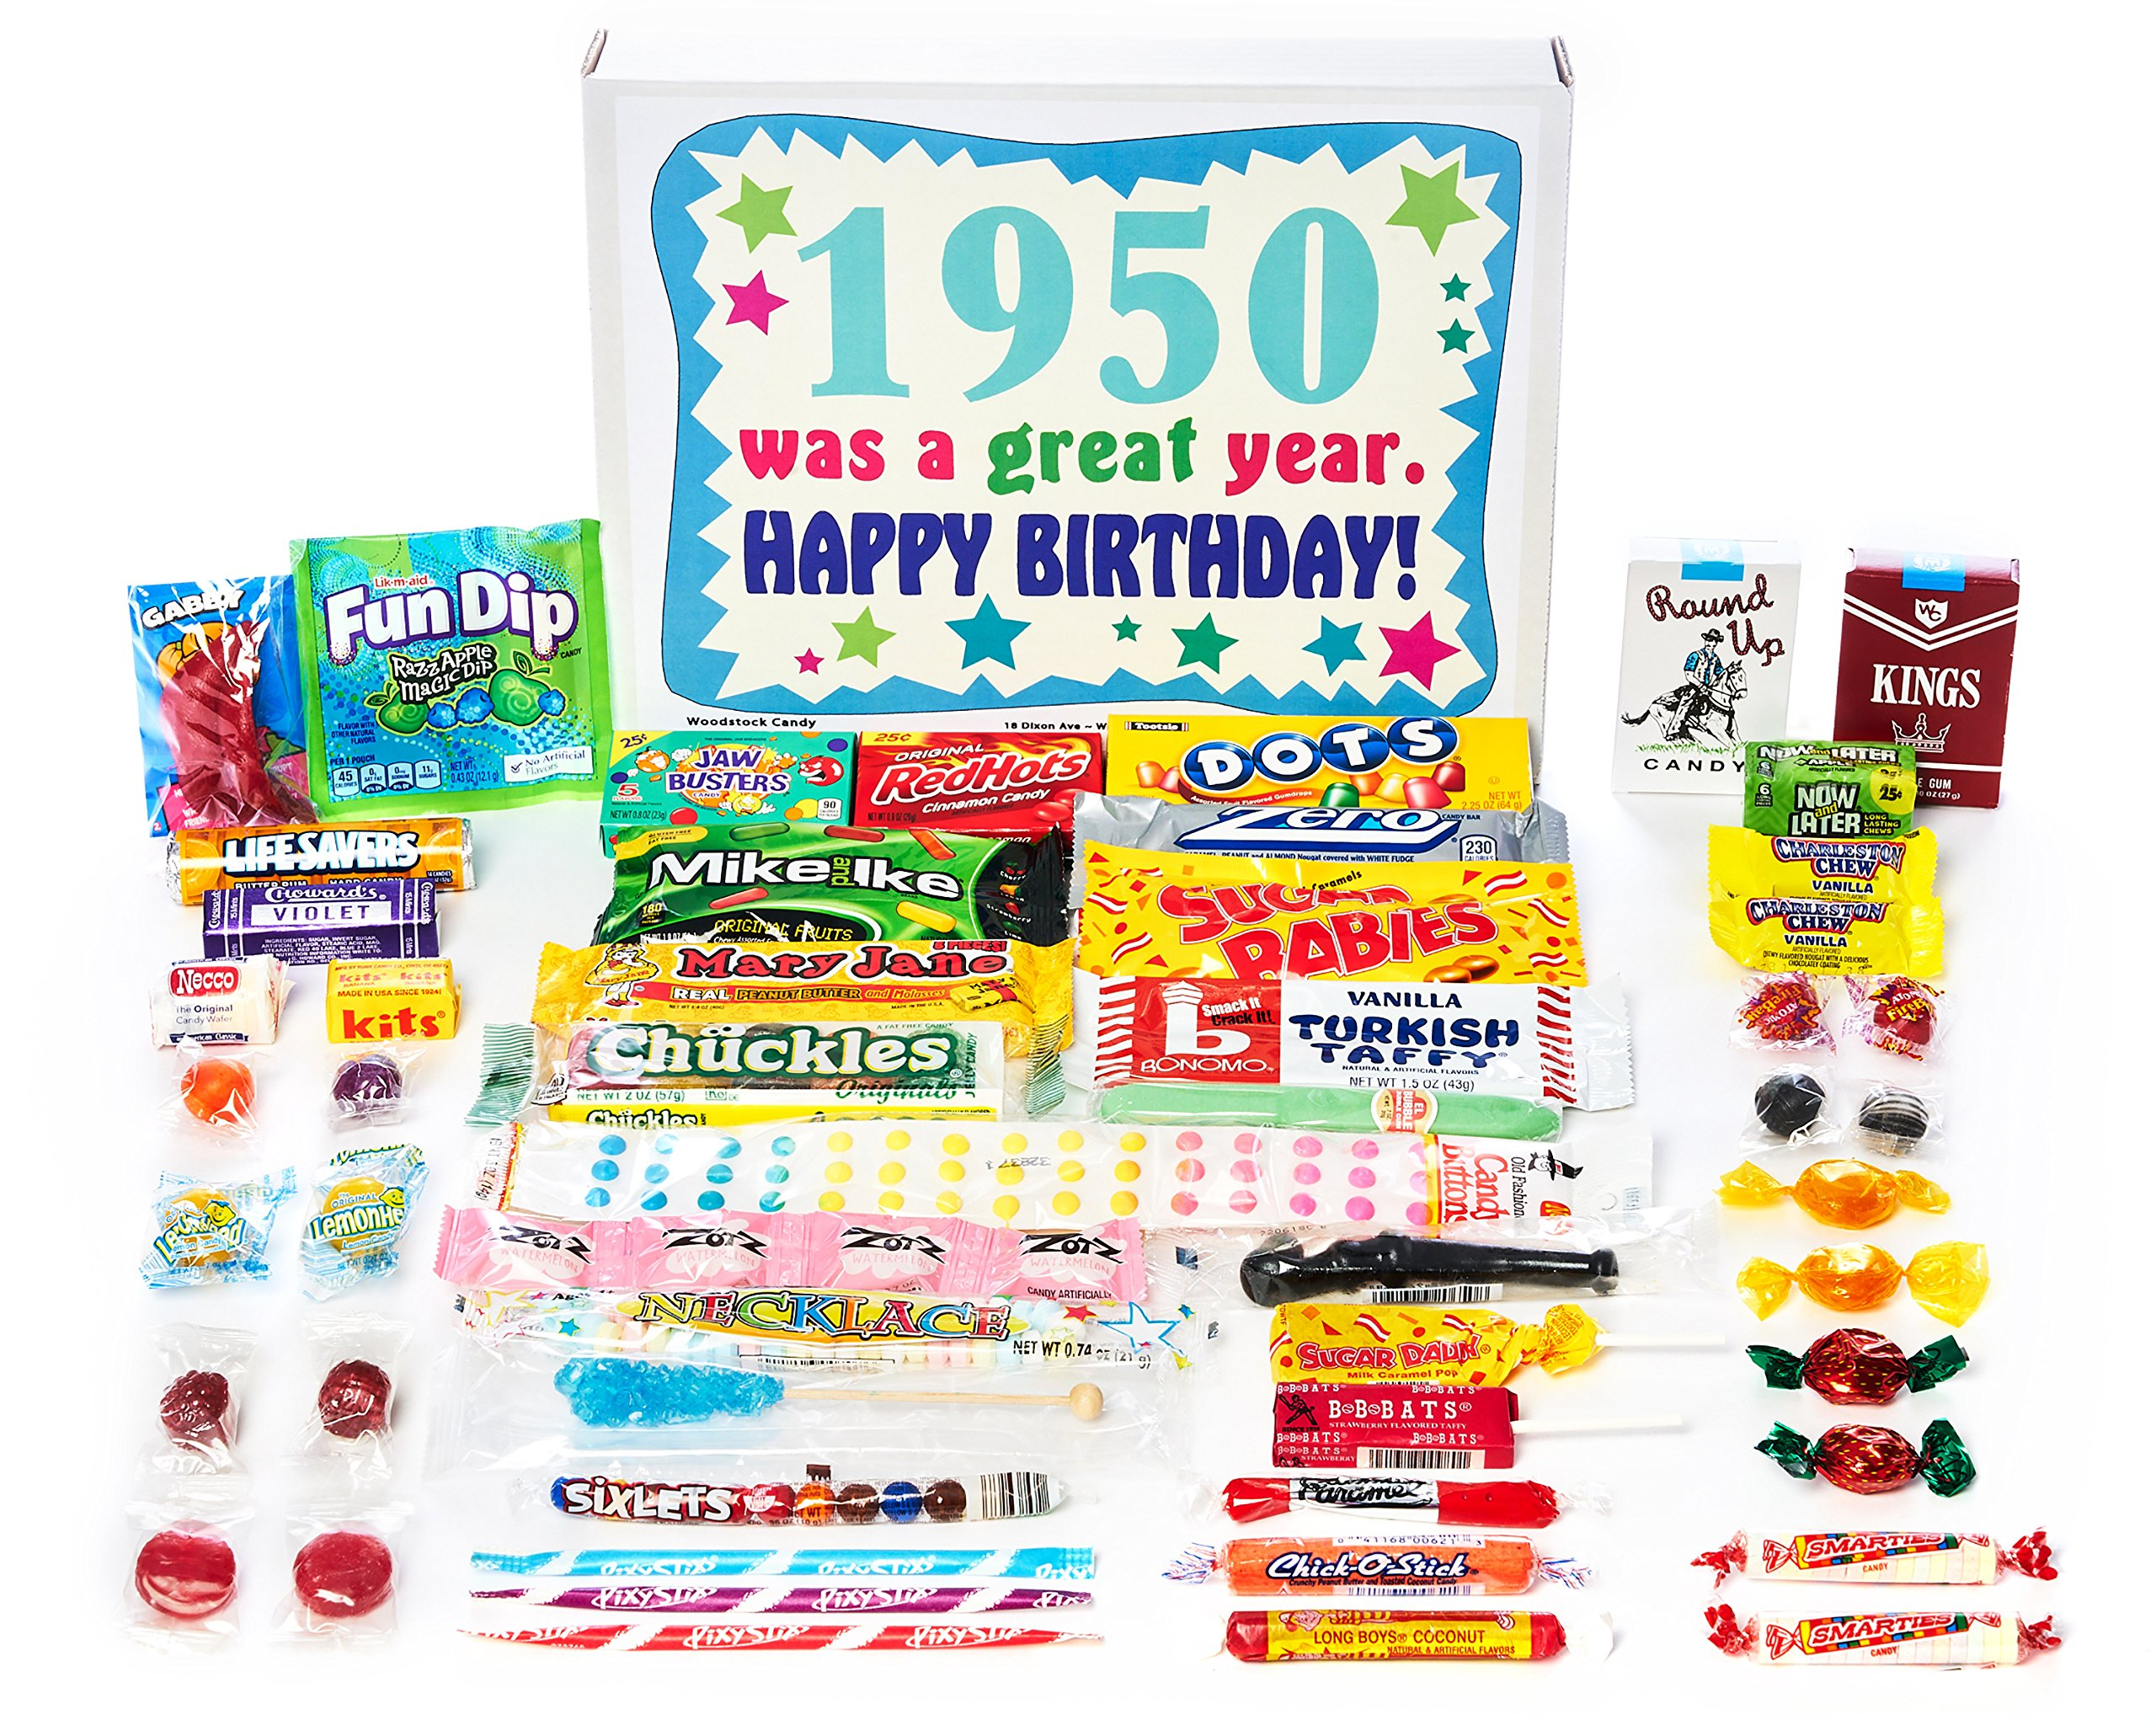 Woodstock Candy ~ 1950 69th Birthday Gift Box of Nostalgic Retro Candy from Childhood for 69 Year Old Man or Woman Born 1950 by Woodstock Candy